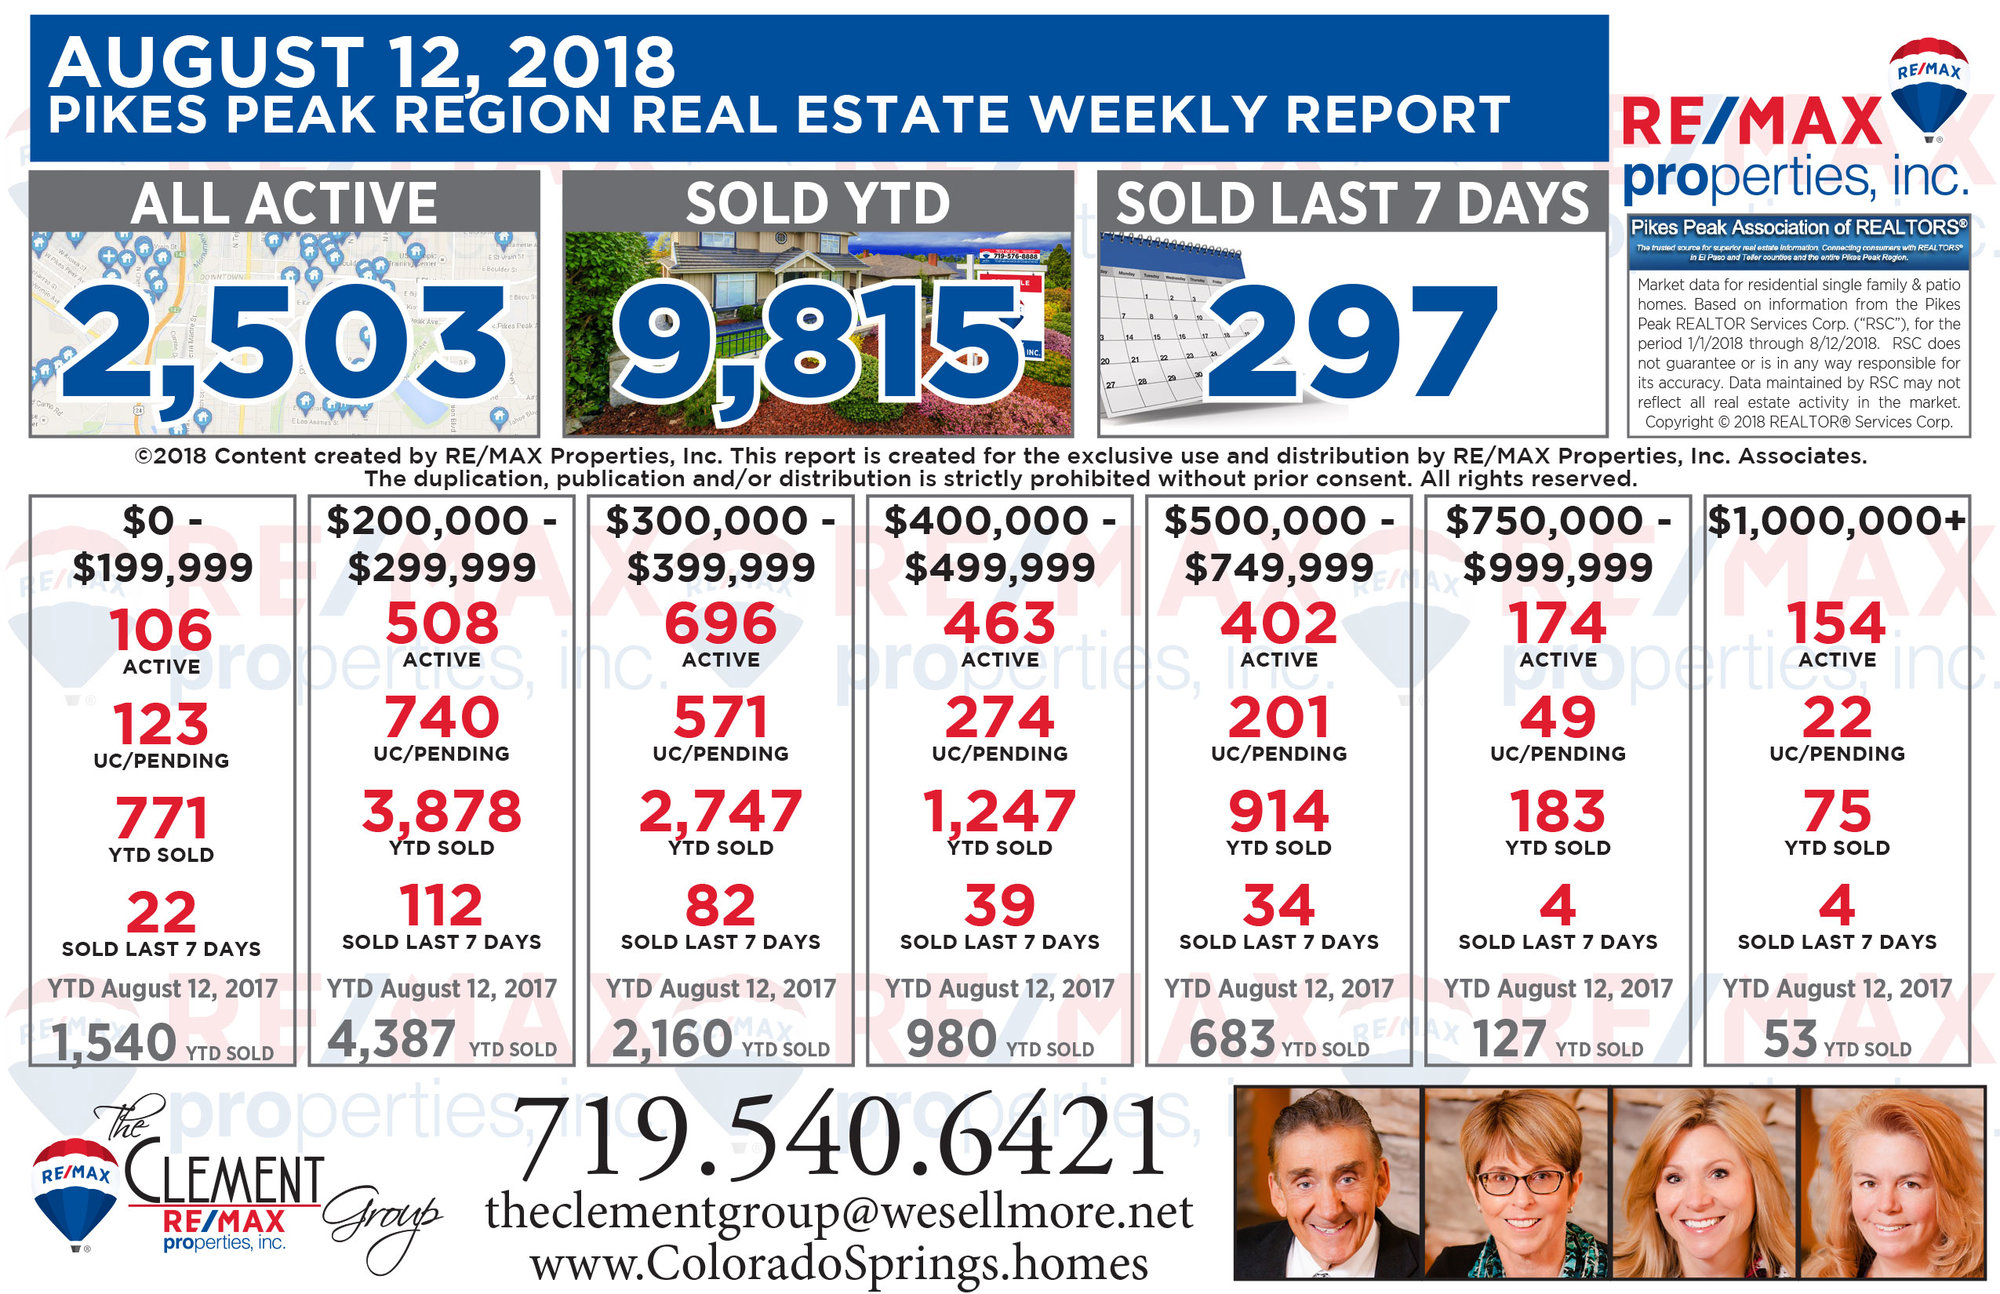 Colorado Springs Real Estate Market Weekly Update - August 12, 2018